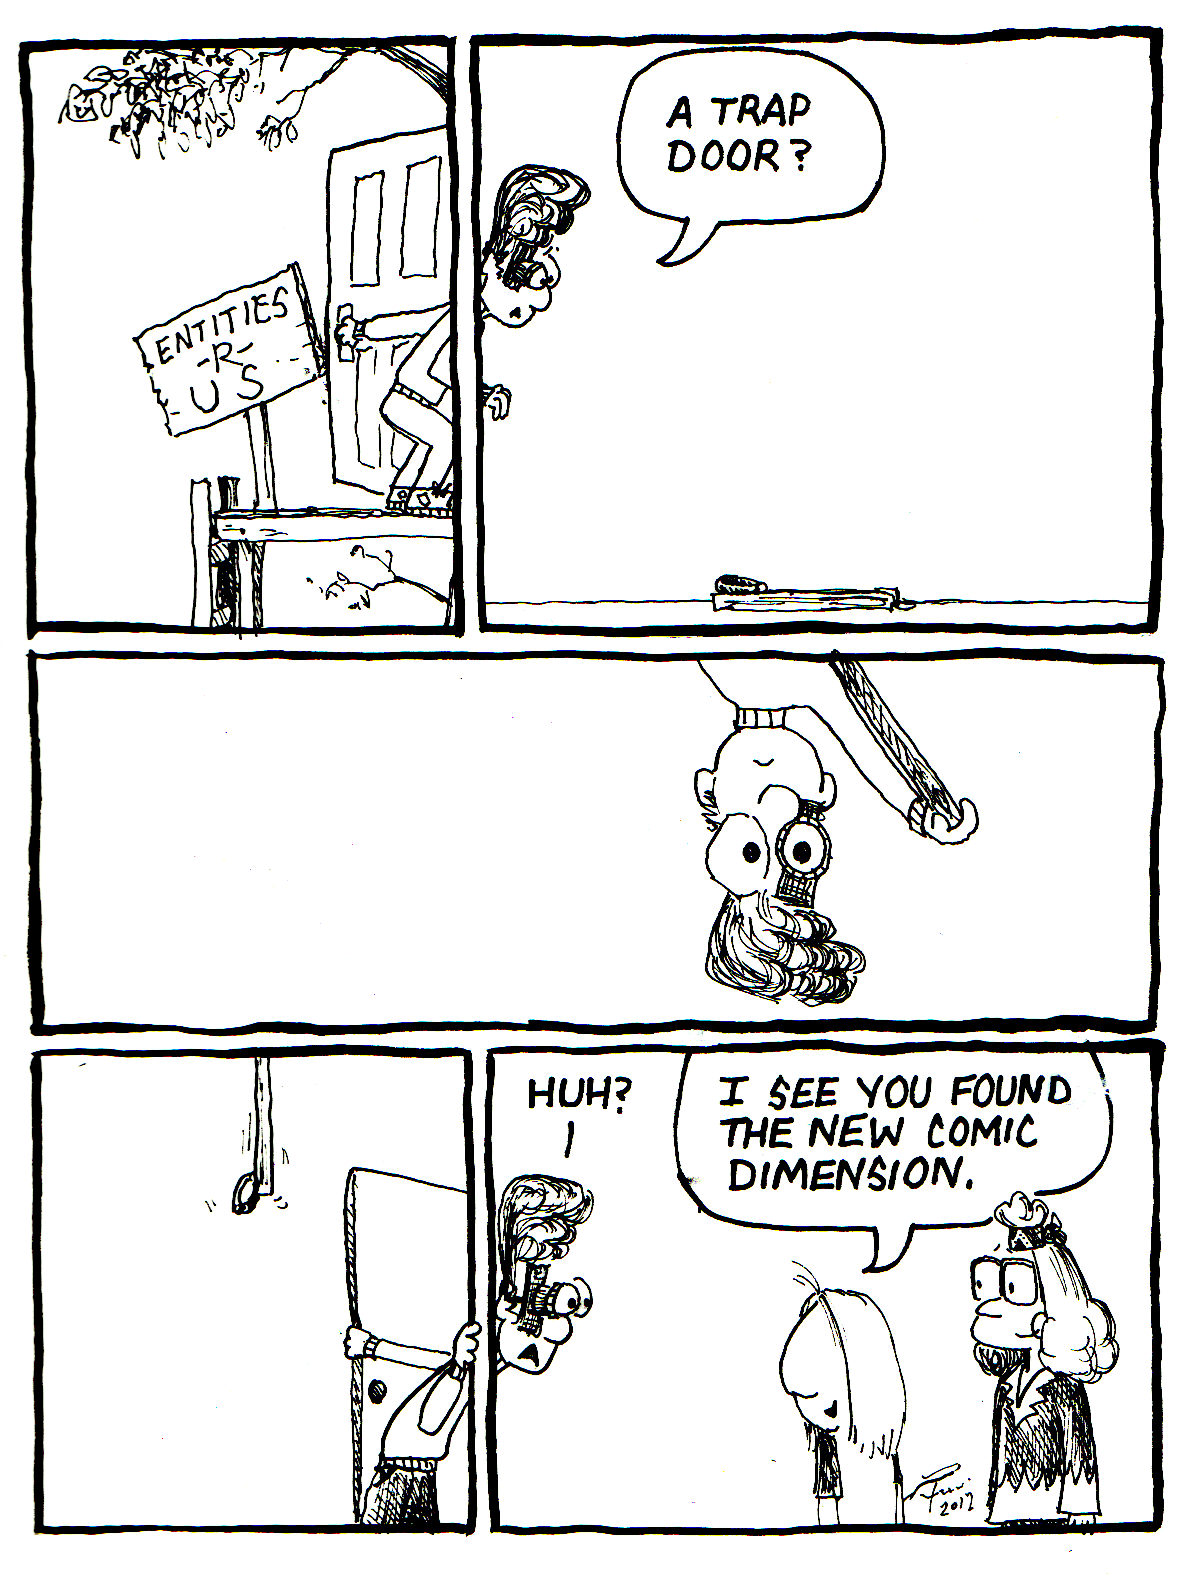 Finally, the comics are back even though my computer is still on the fritz. Cartoons the old fashioned way once again.